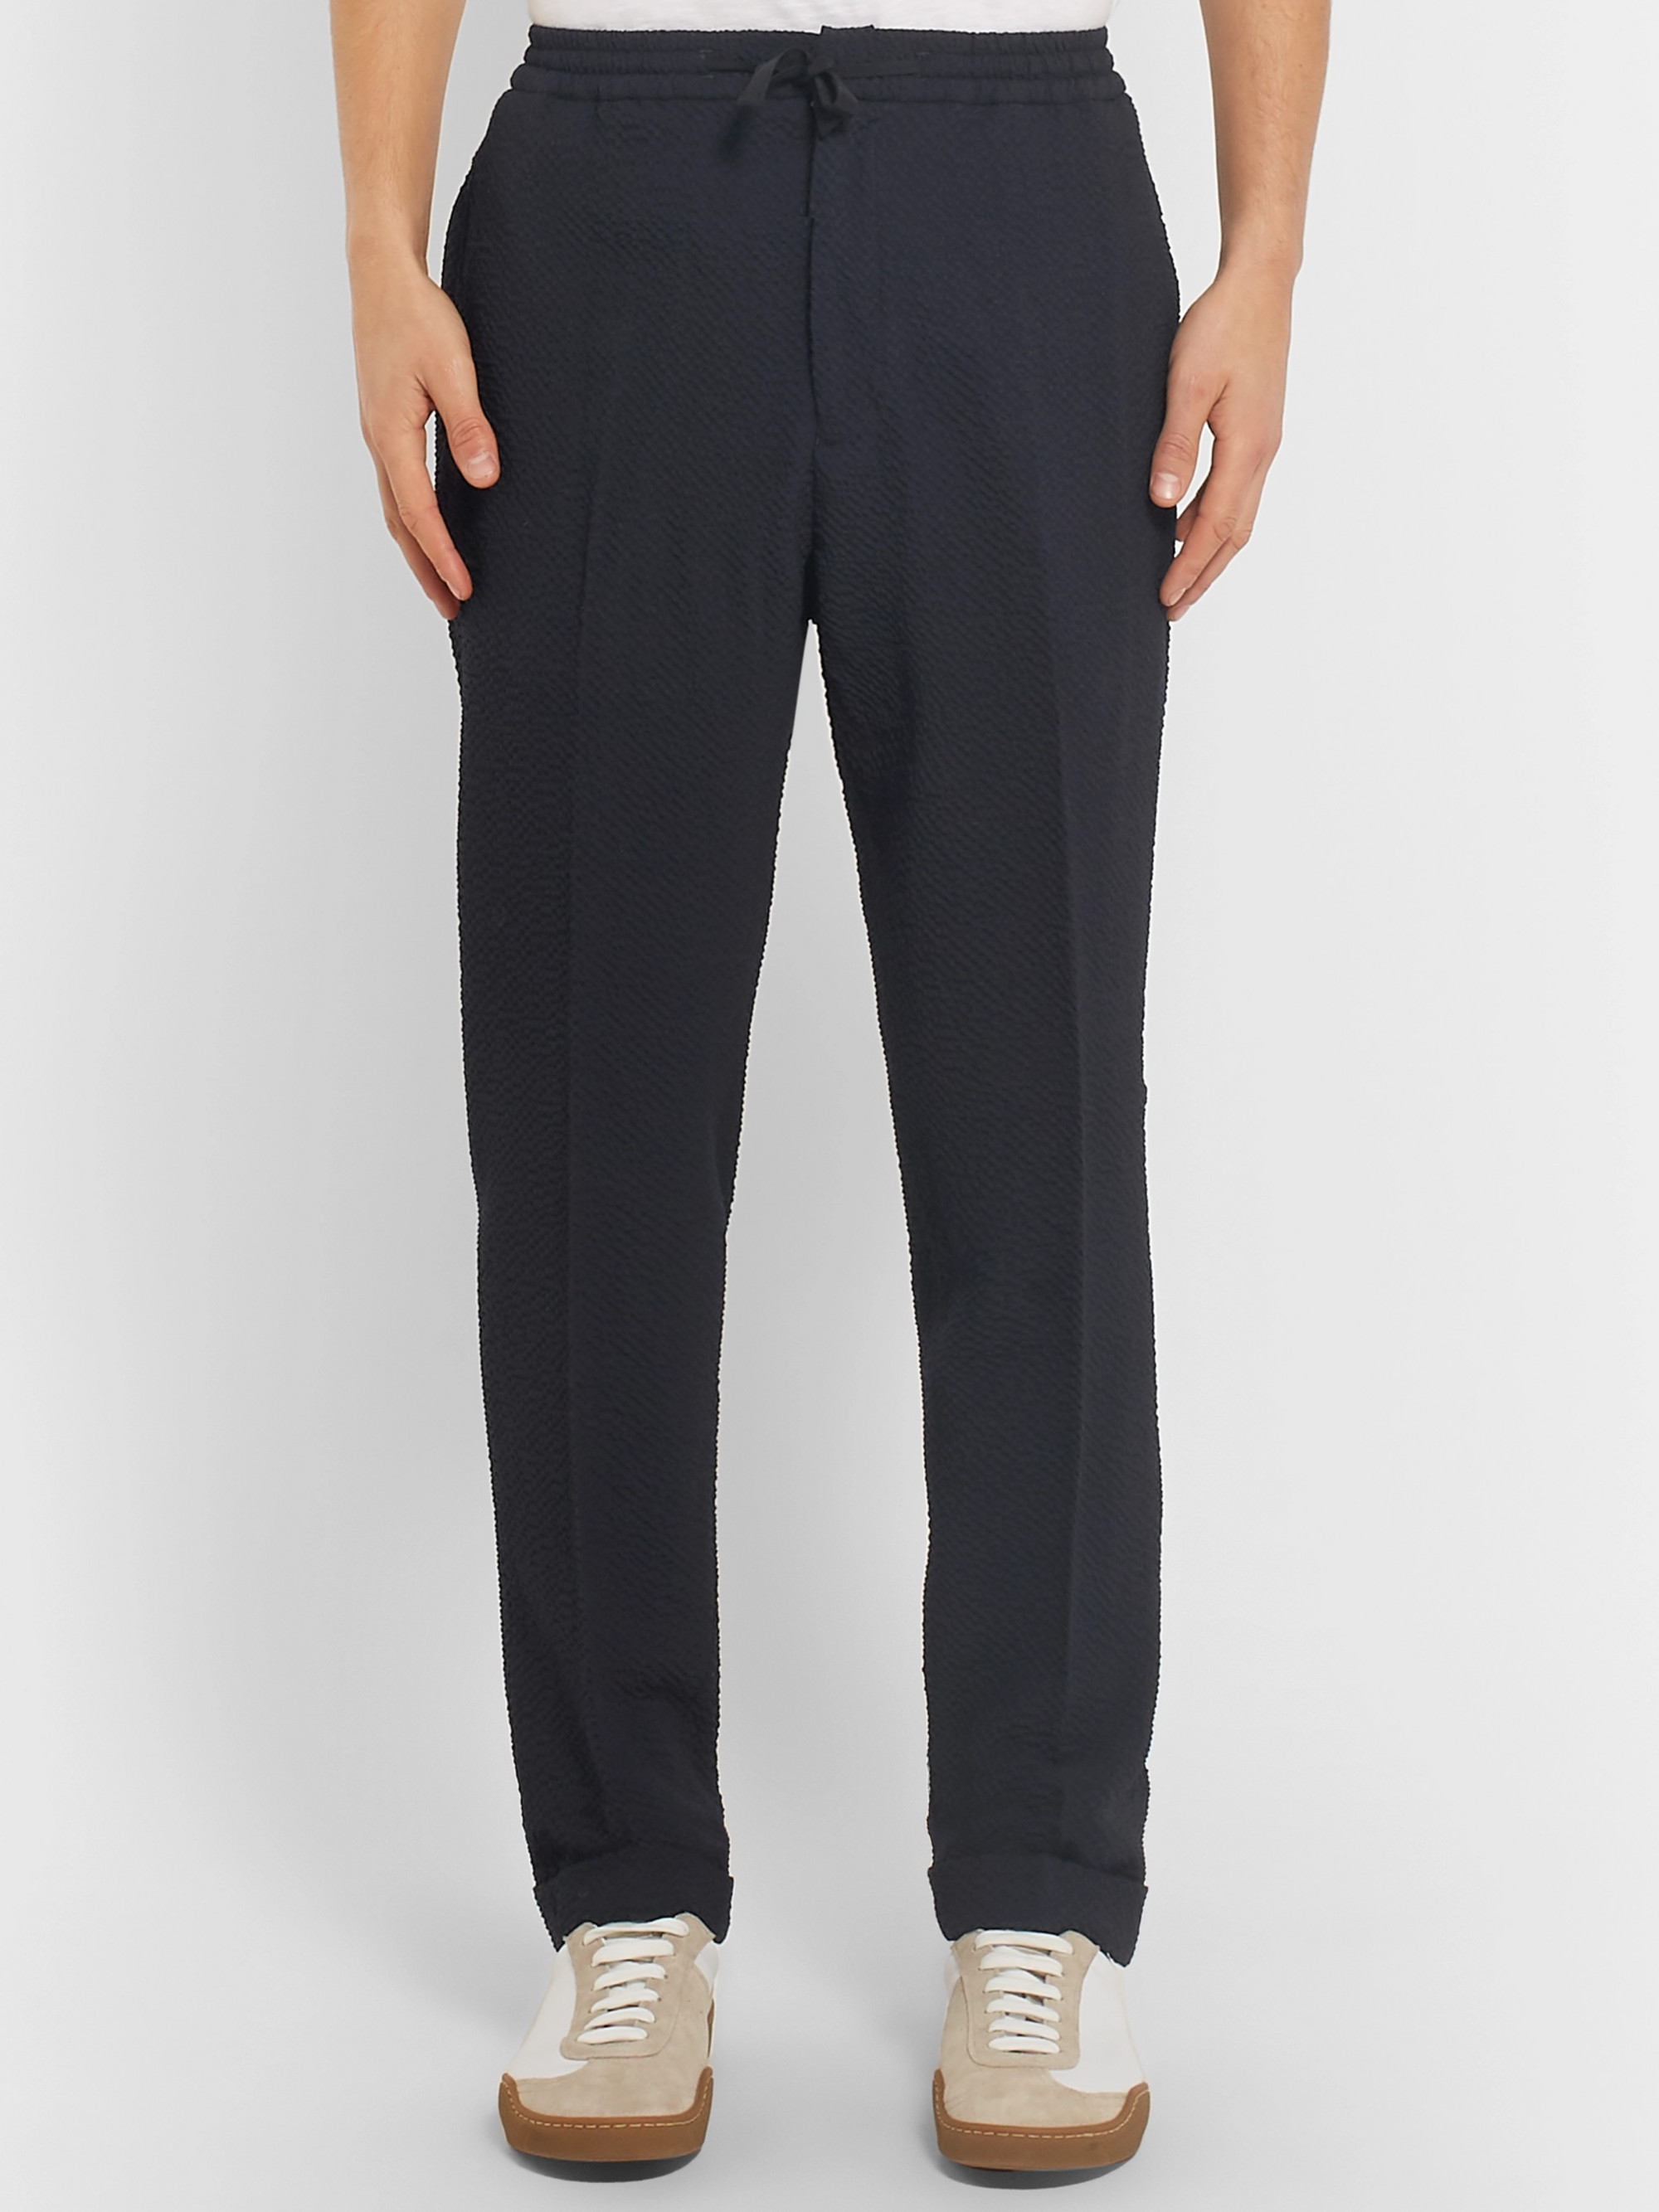 Officine Generale Navy Tapered Wool-Blend Seersucker Drawstring Trousers